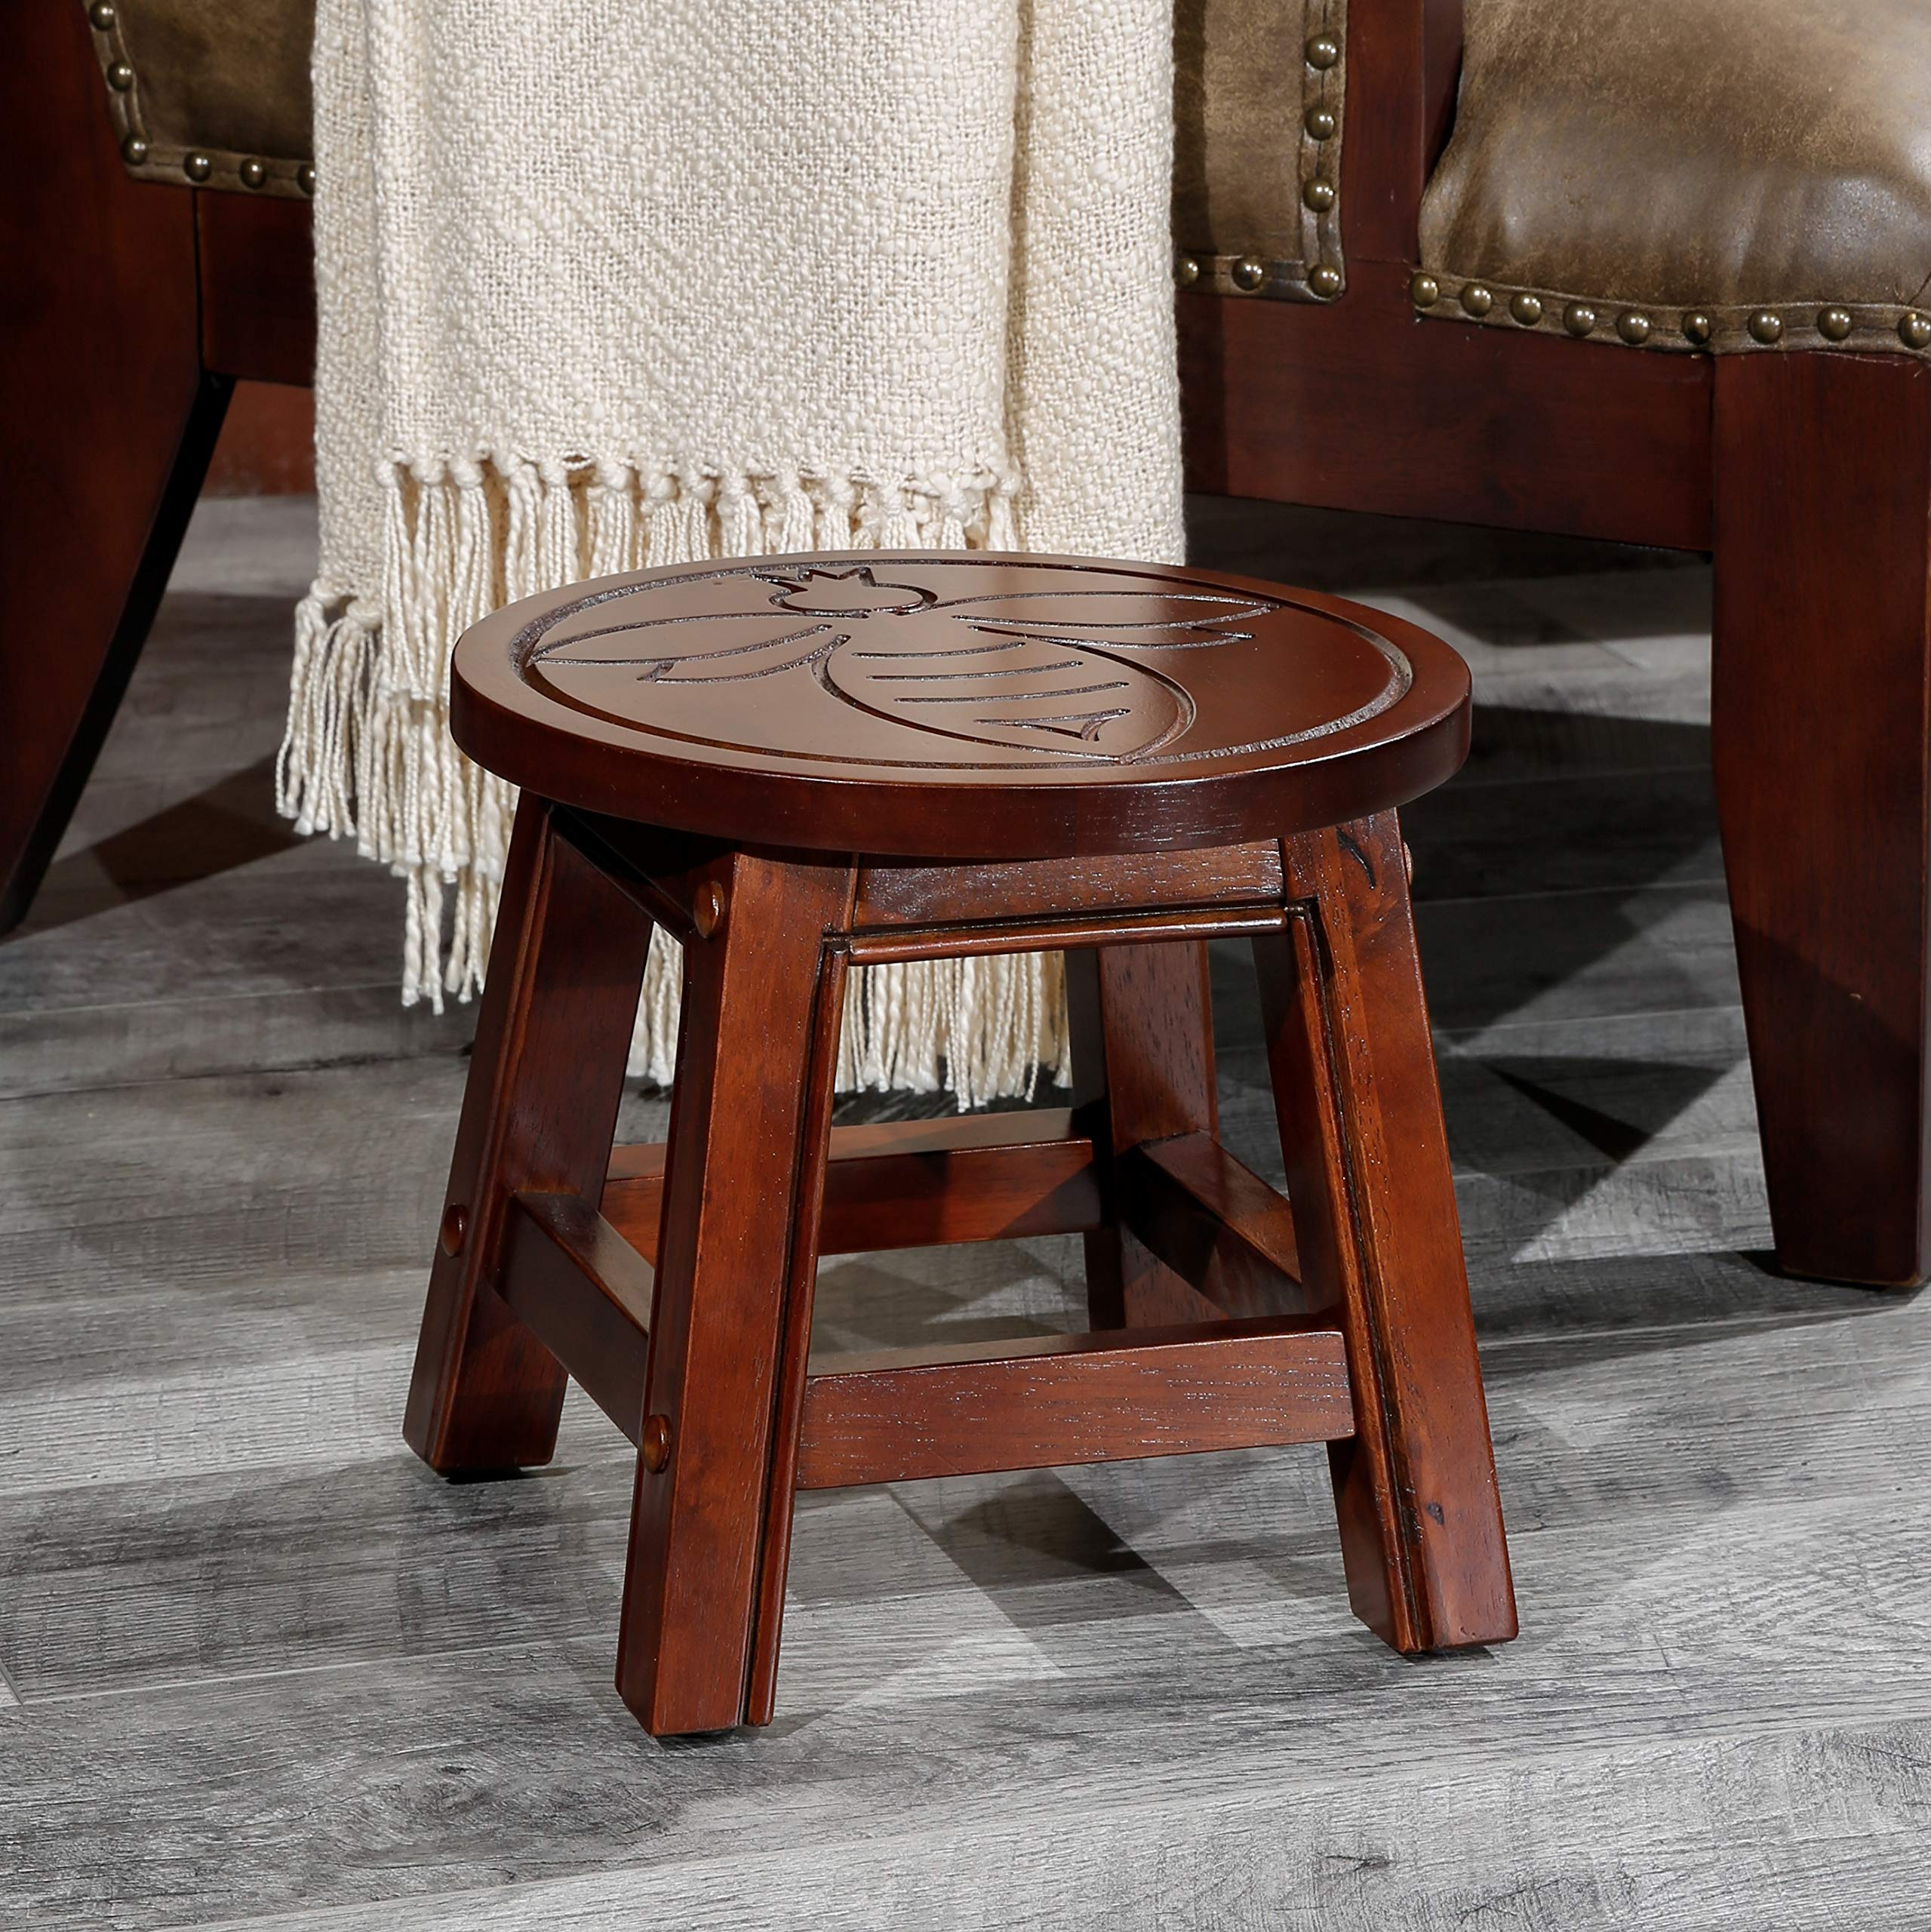 DTY Indoor Living Fairplay Carved Wooden Step Stool, Queen Bee, Cherry by DTY